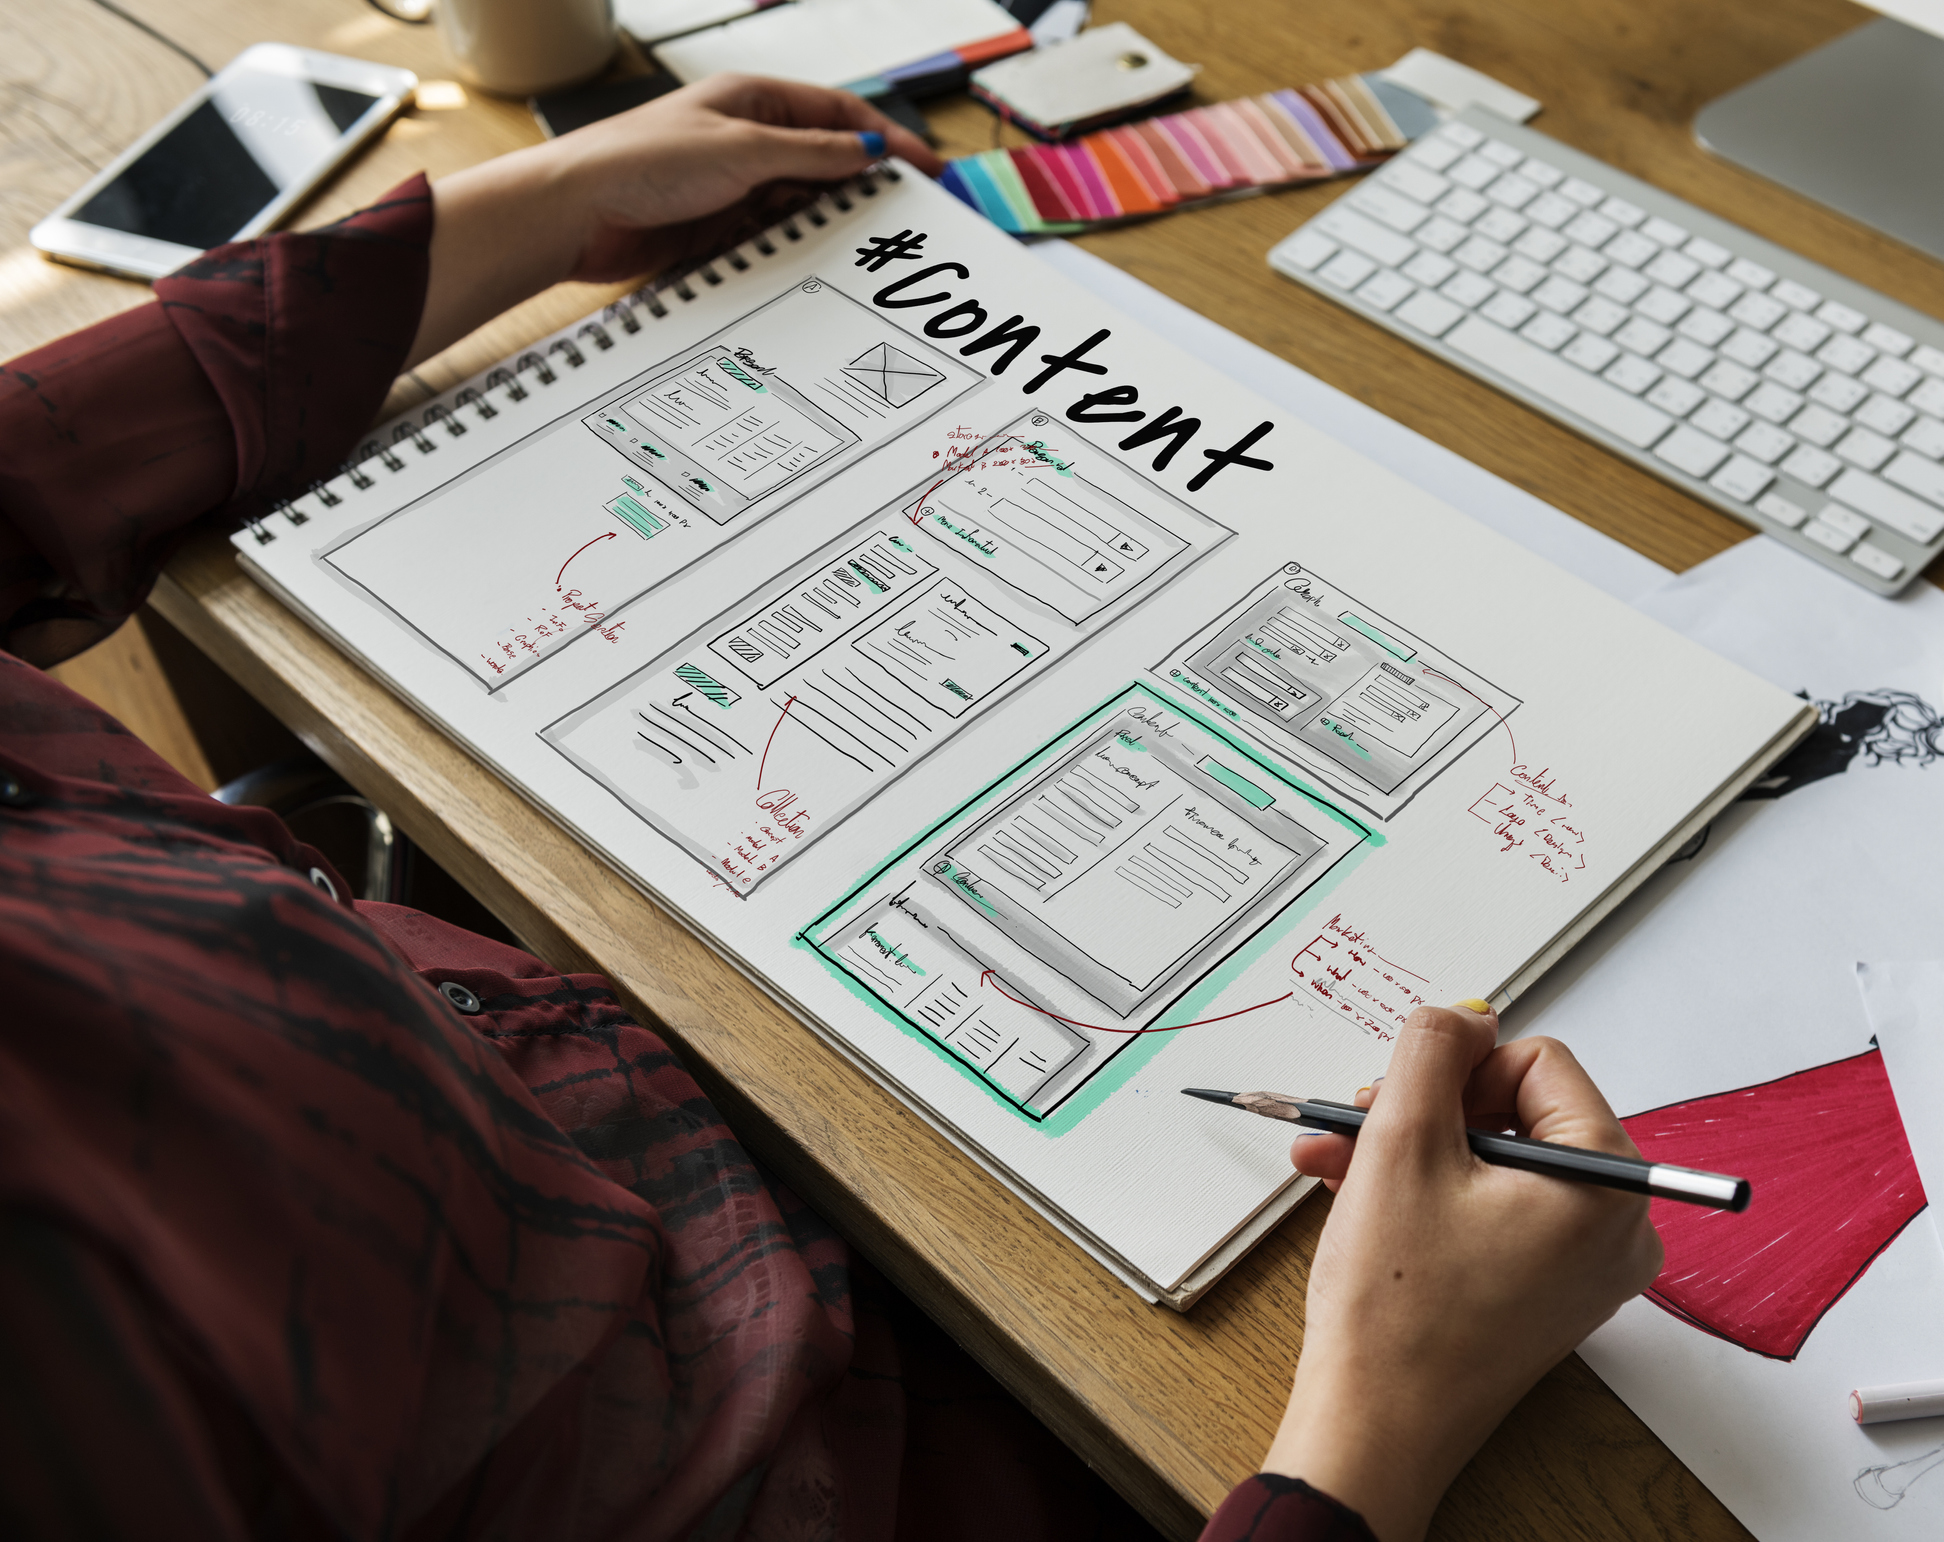 Designing Meaningful, Interactive, and Compelling Content